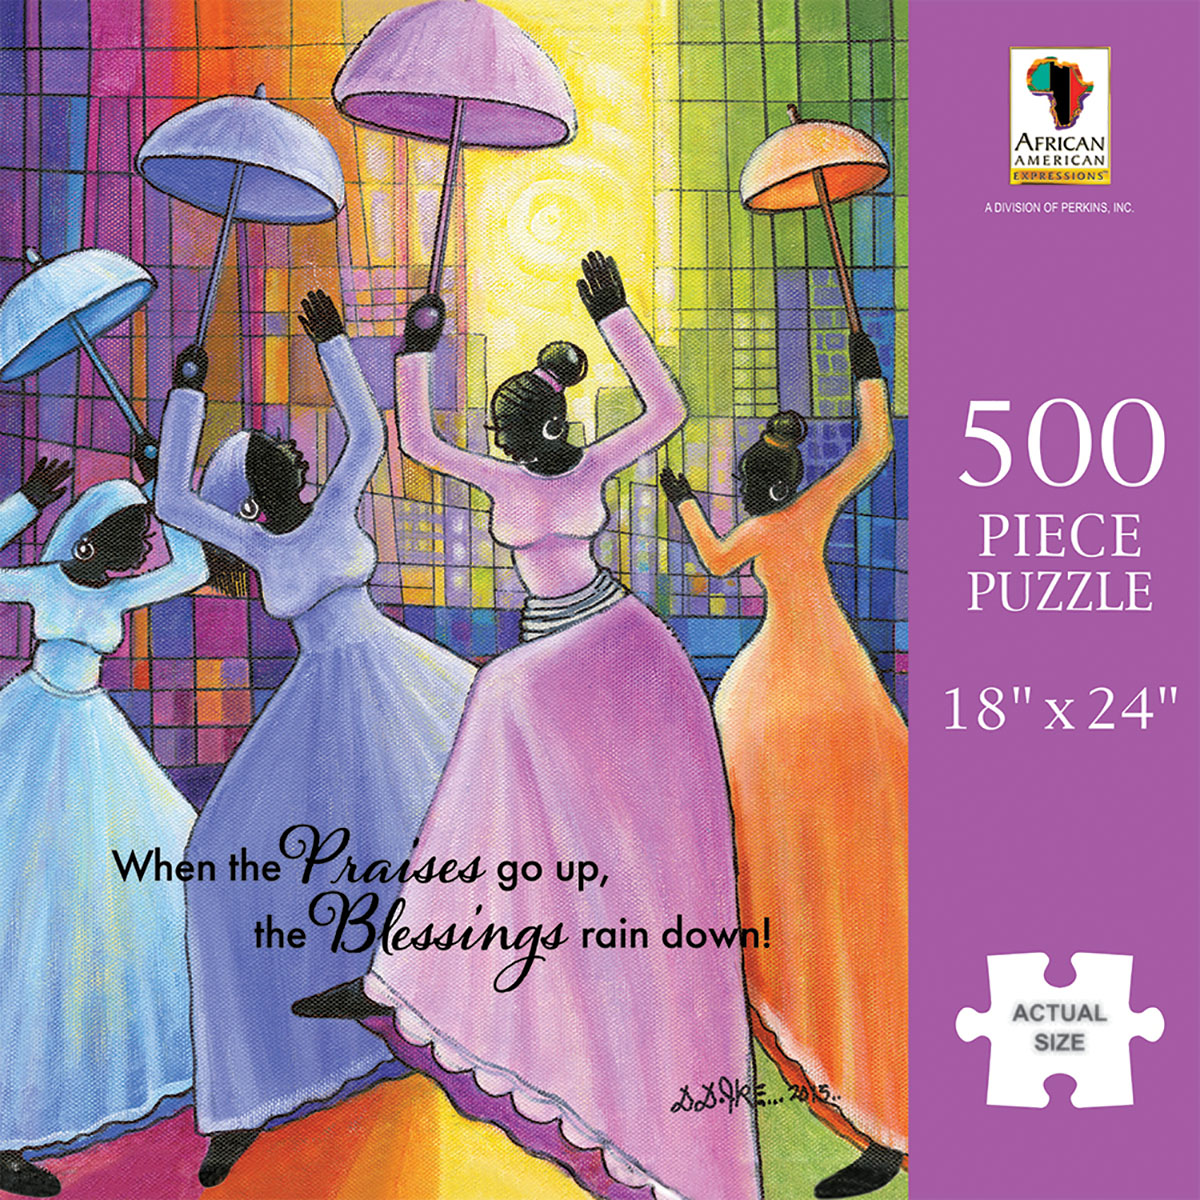 Praises Go Up - Scratch and Dent Religious Jigsaw Puzzle